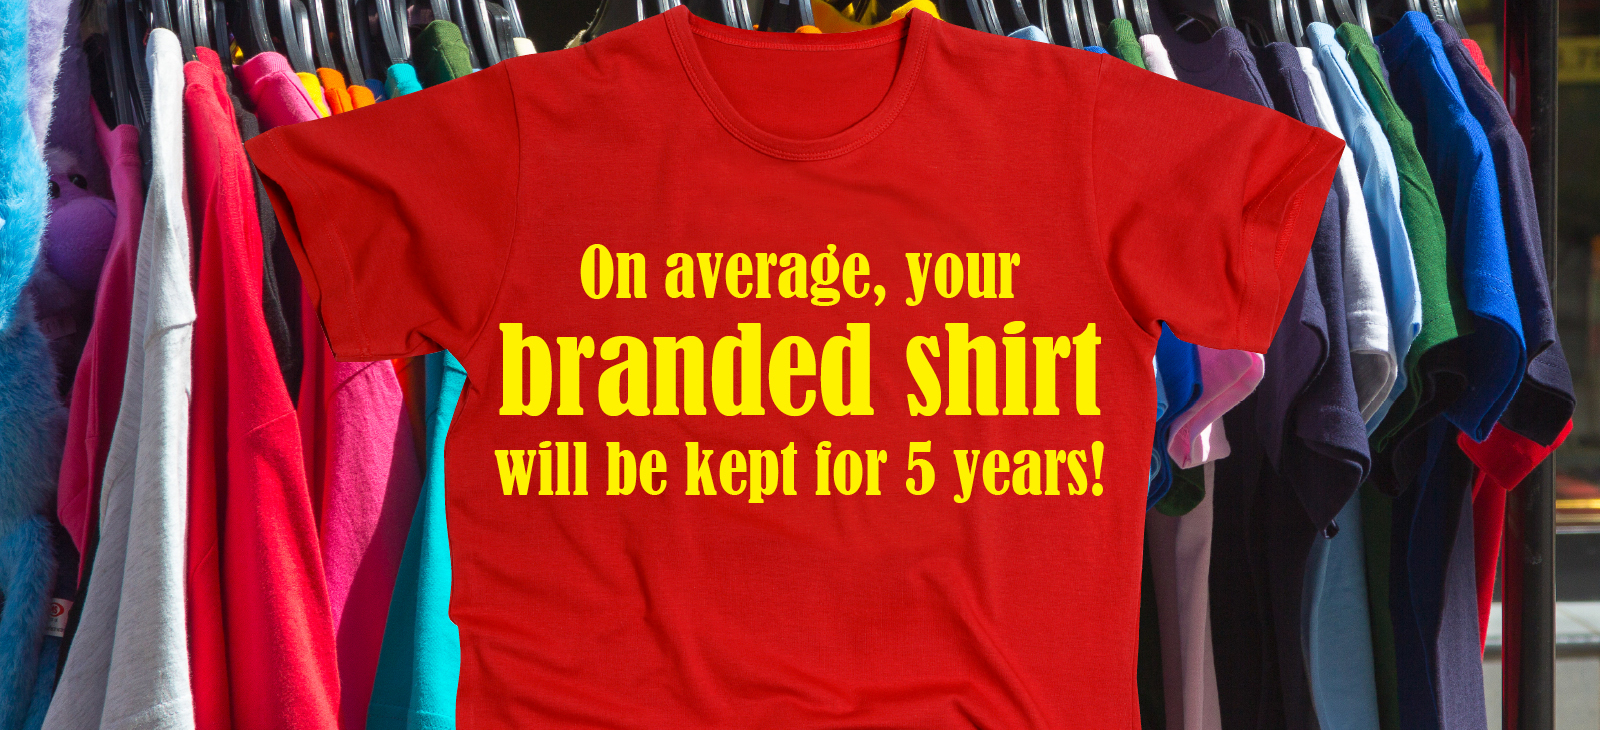 Strengthen Your Brand Today with a Promotional Product.